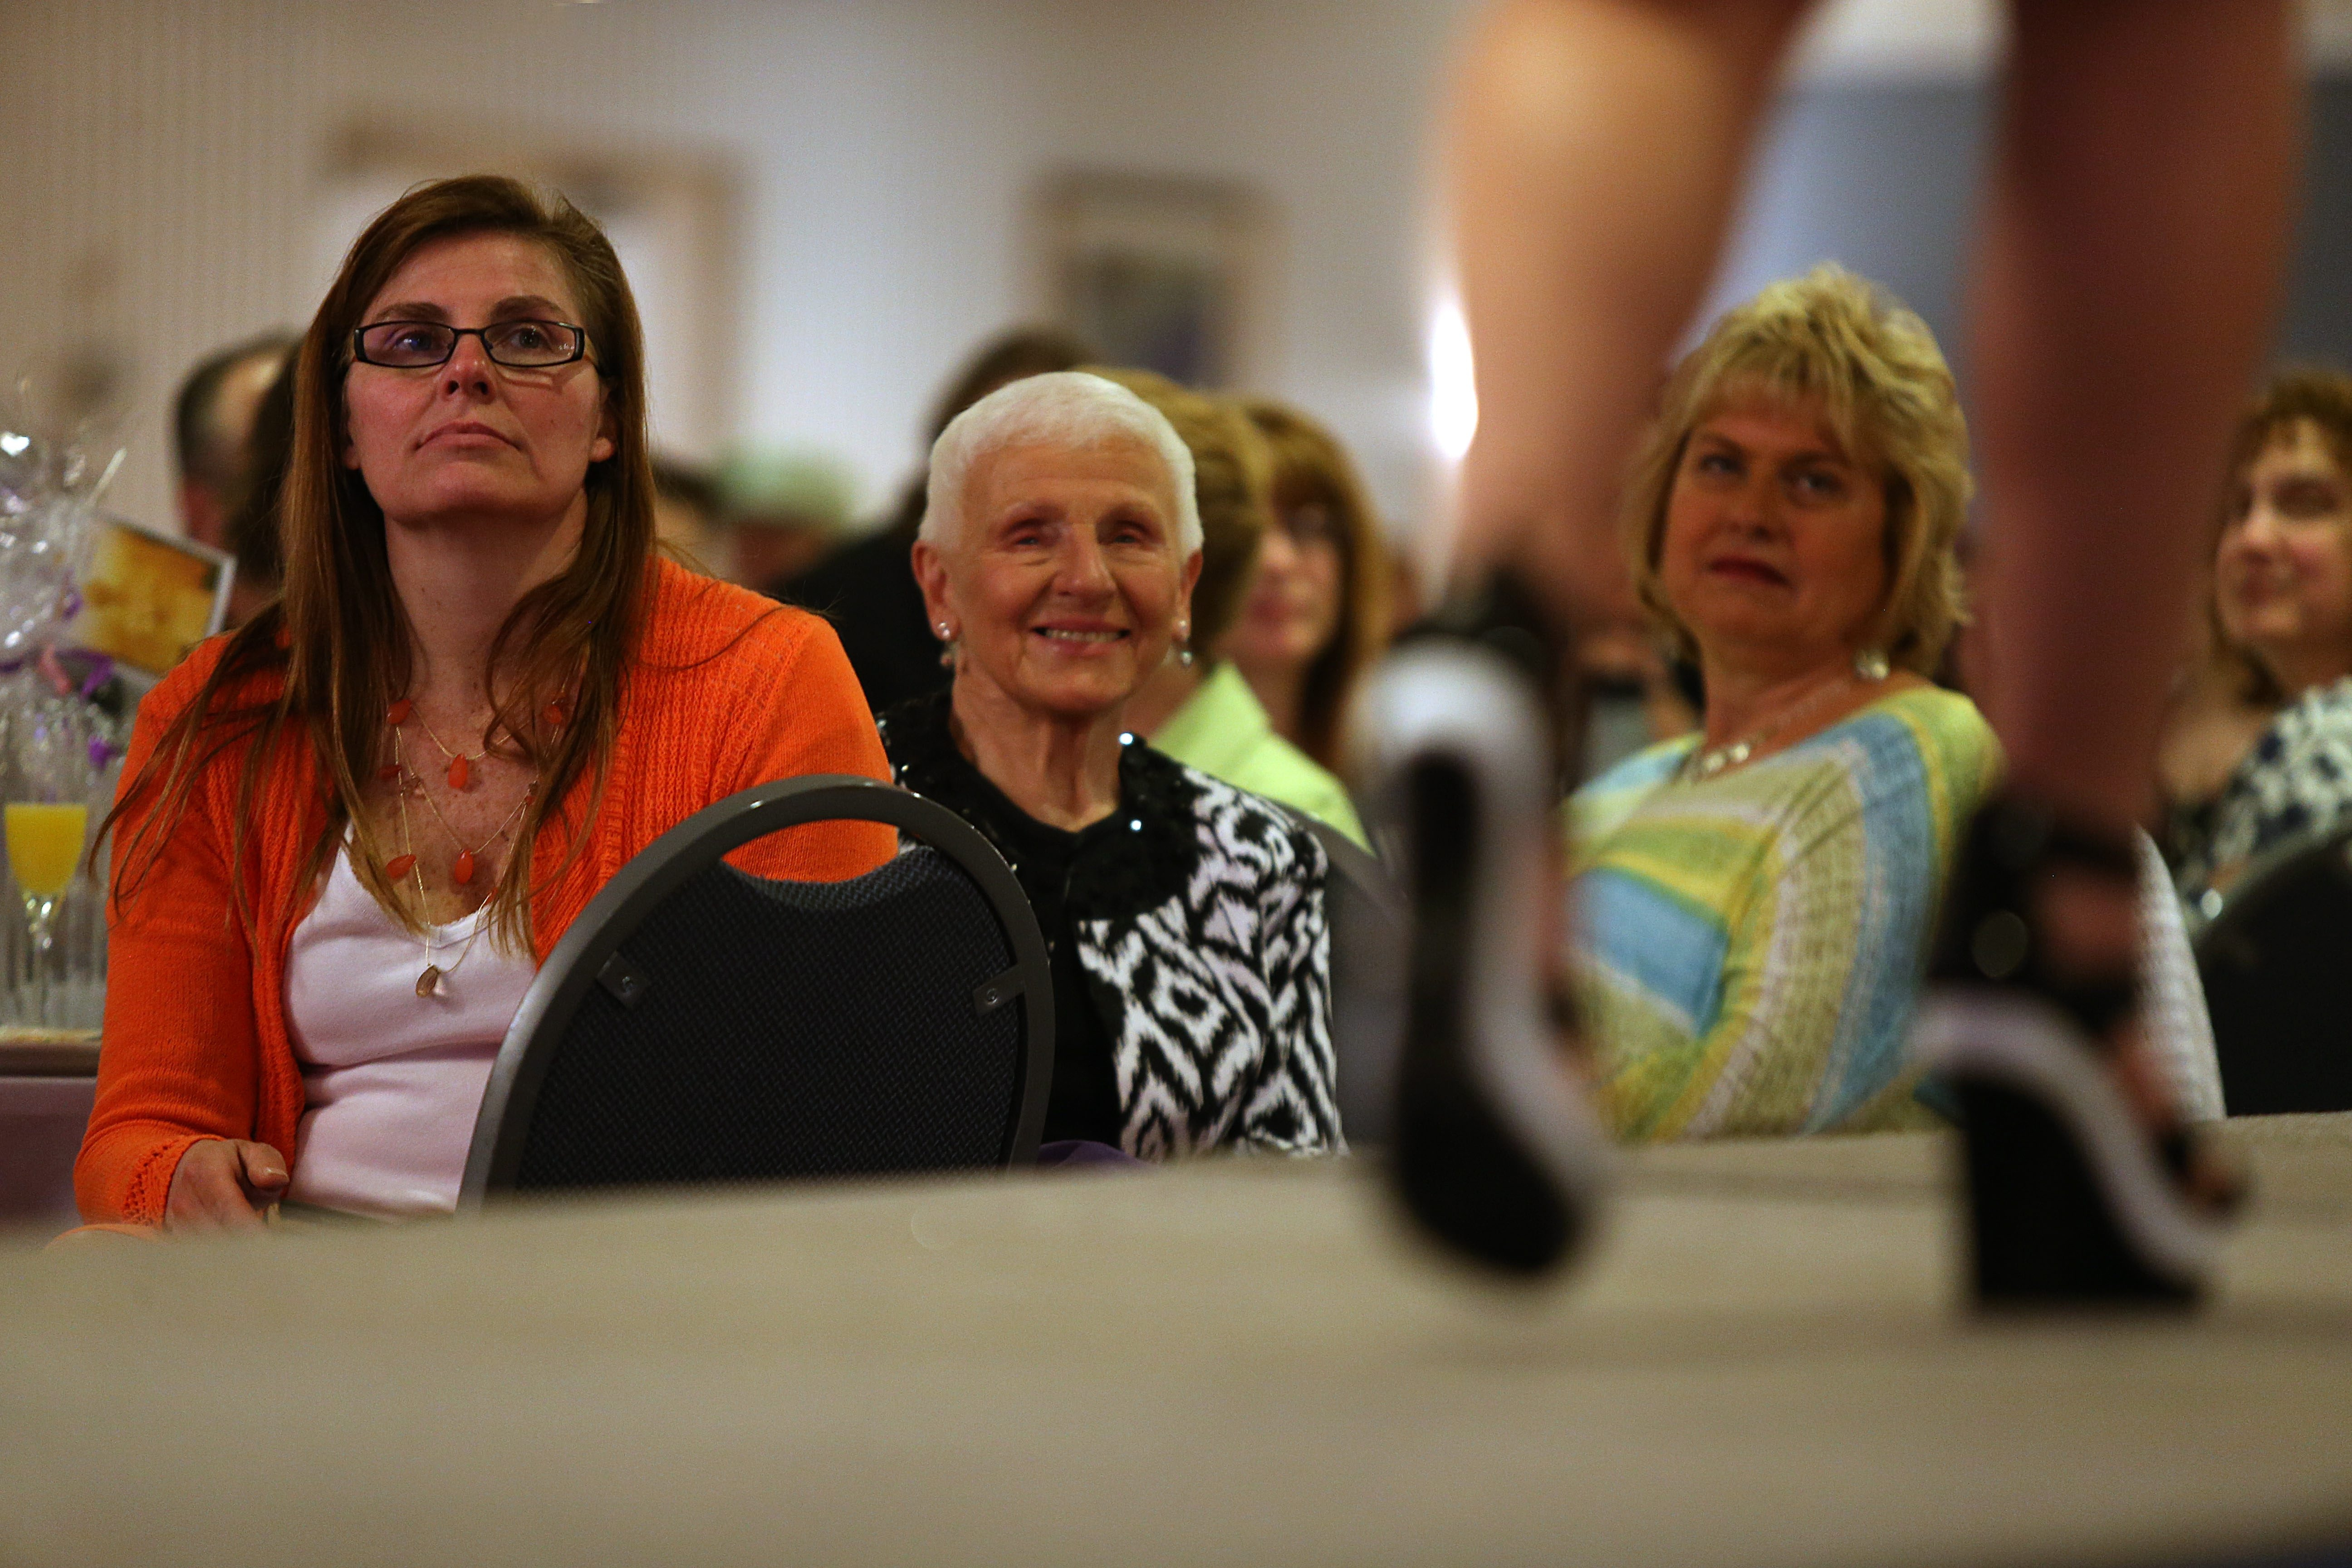 Left to right, Jackie Yager, of Silver Creek, June Kij, of Lackawanna, and Sheree Belle, of Williamsville, watch models on the runway at Hearthstone Manor during a fashion show to benefit Haven House.